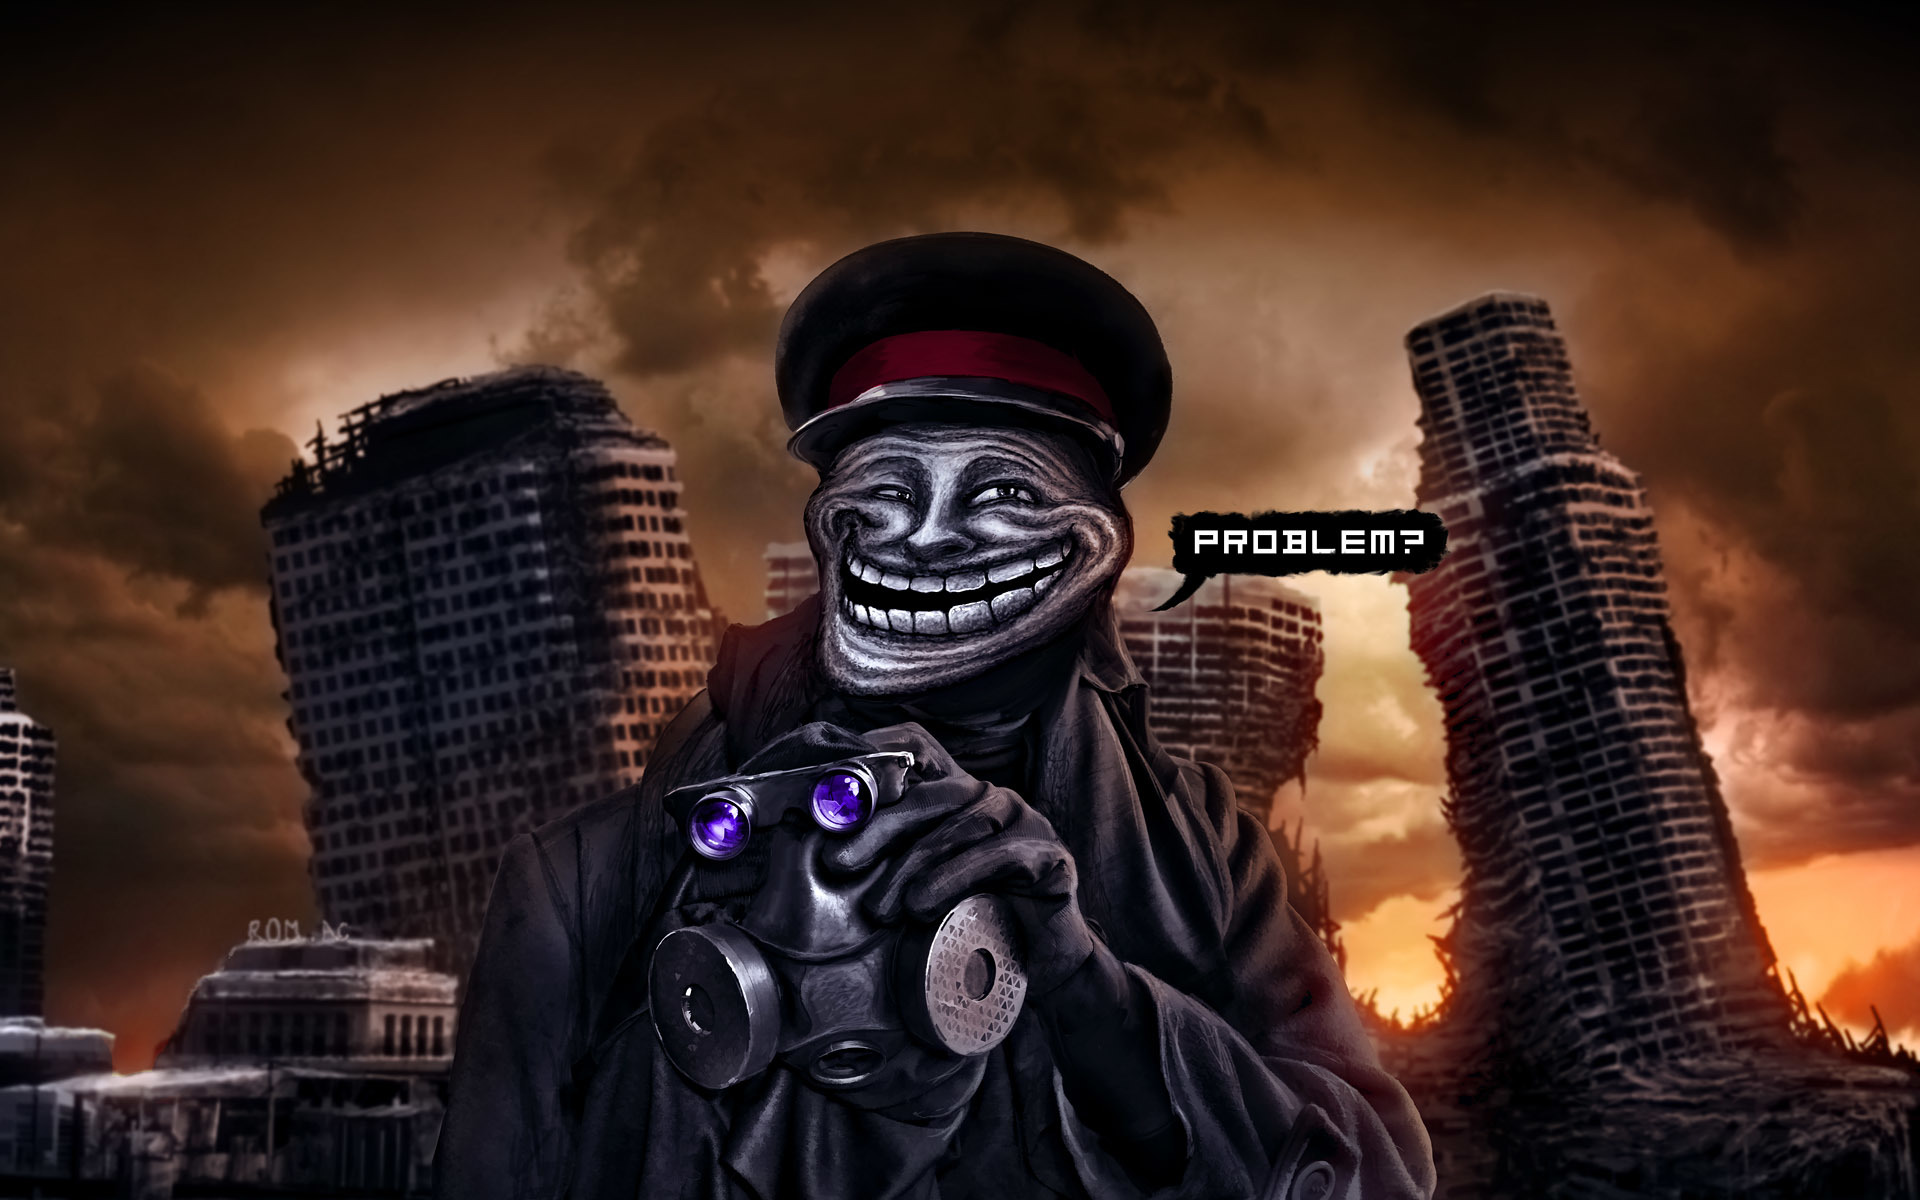 trollface Trolls romantically apocalyptic HD Wallpaper